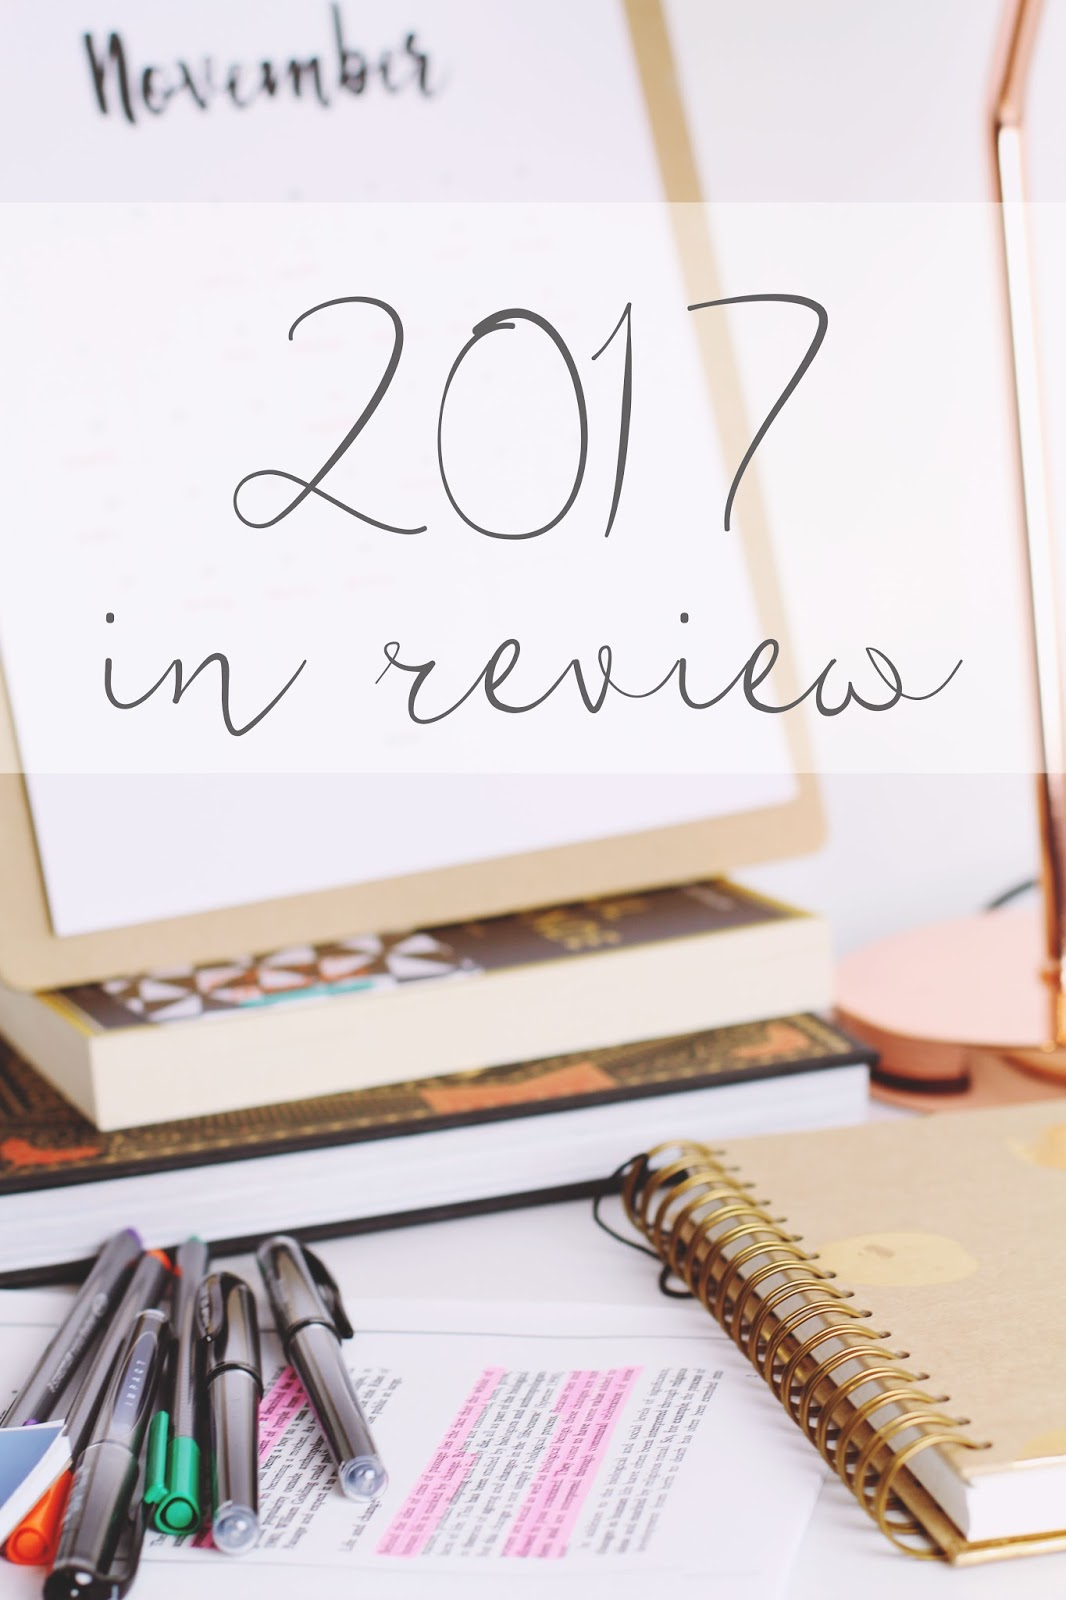 2017 blog and life goals reviewed